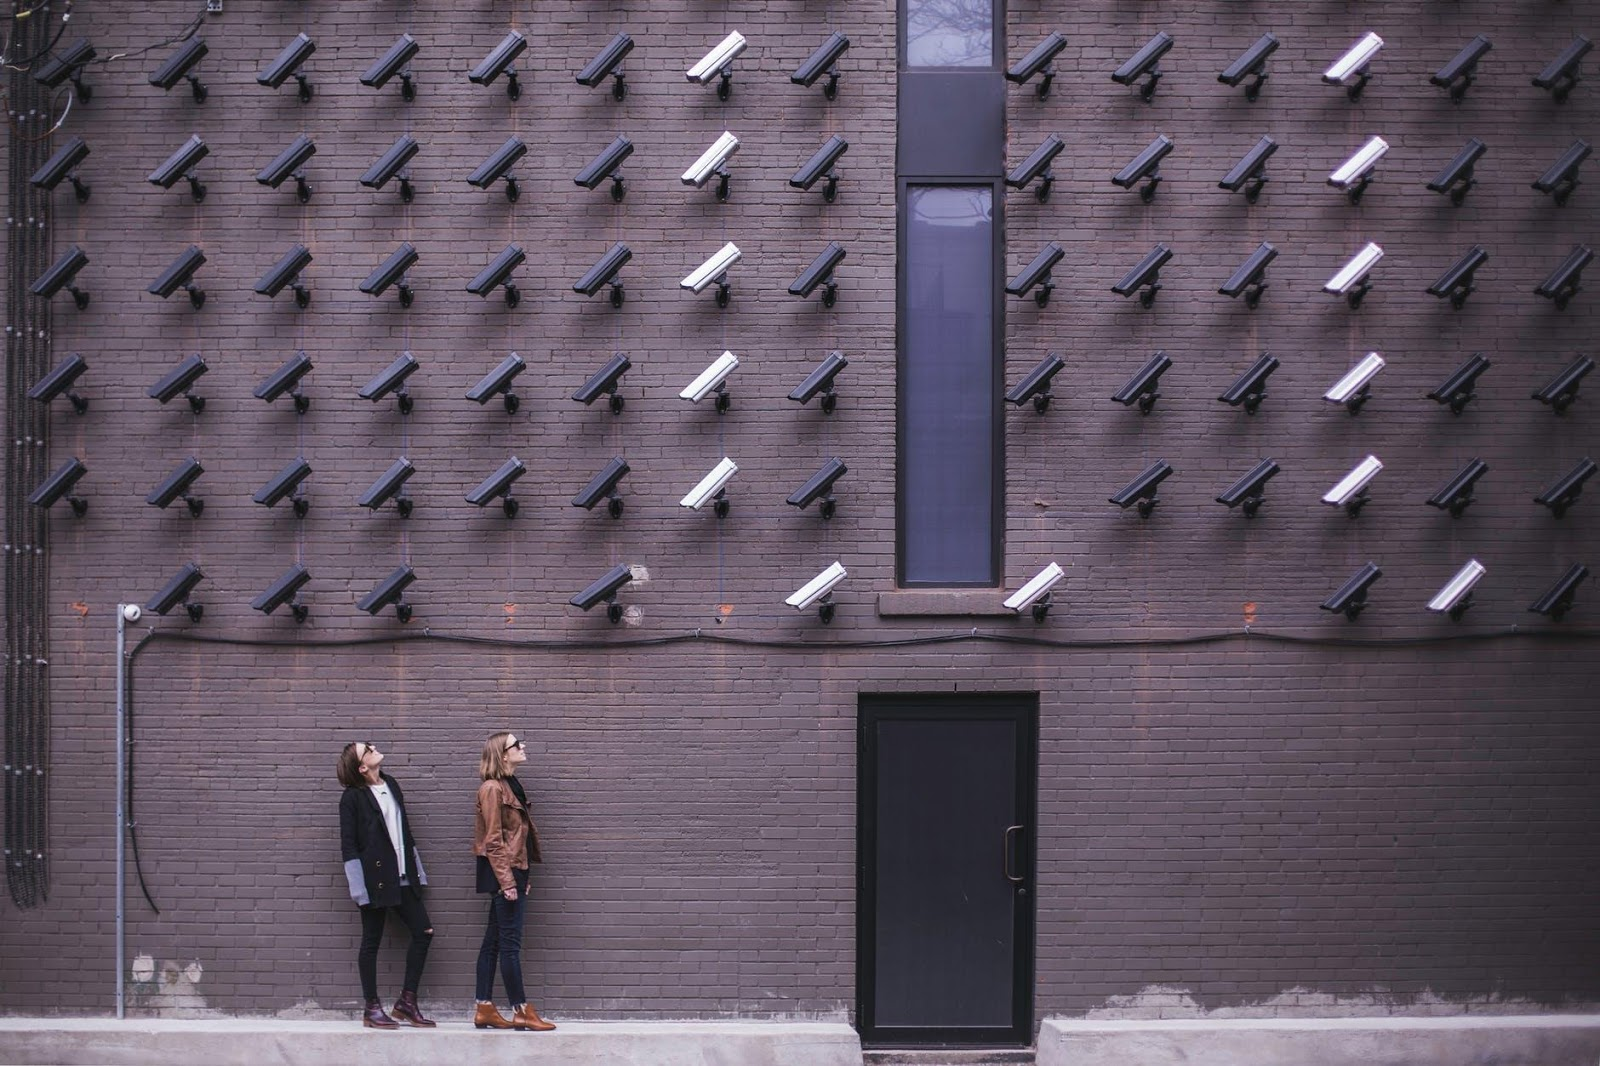 Points to Keep in Mind Before Any CCTV Installation